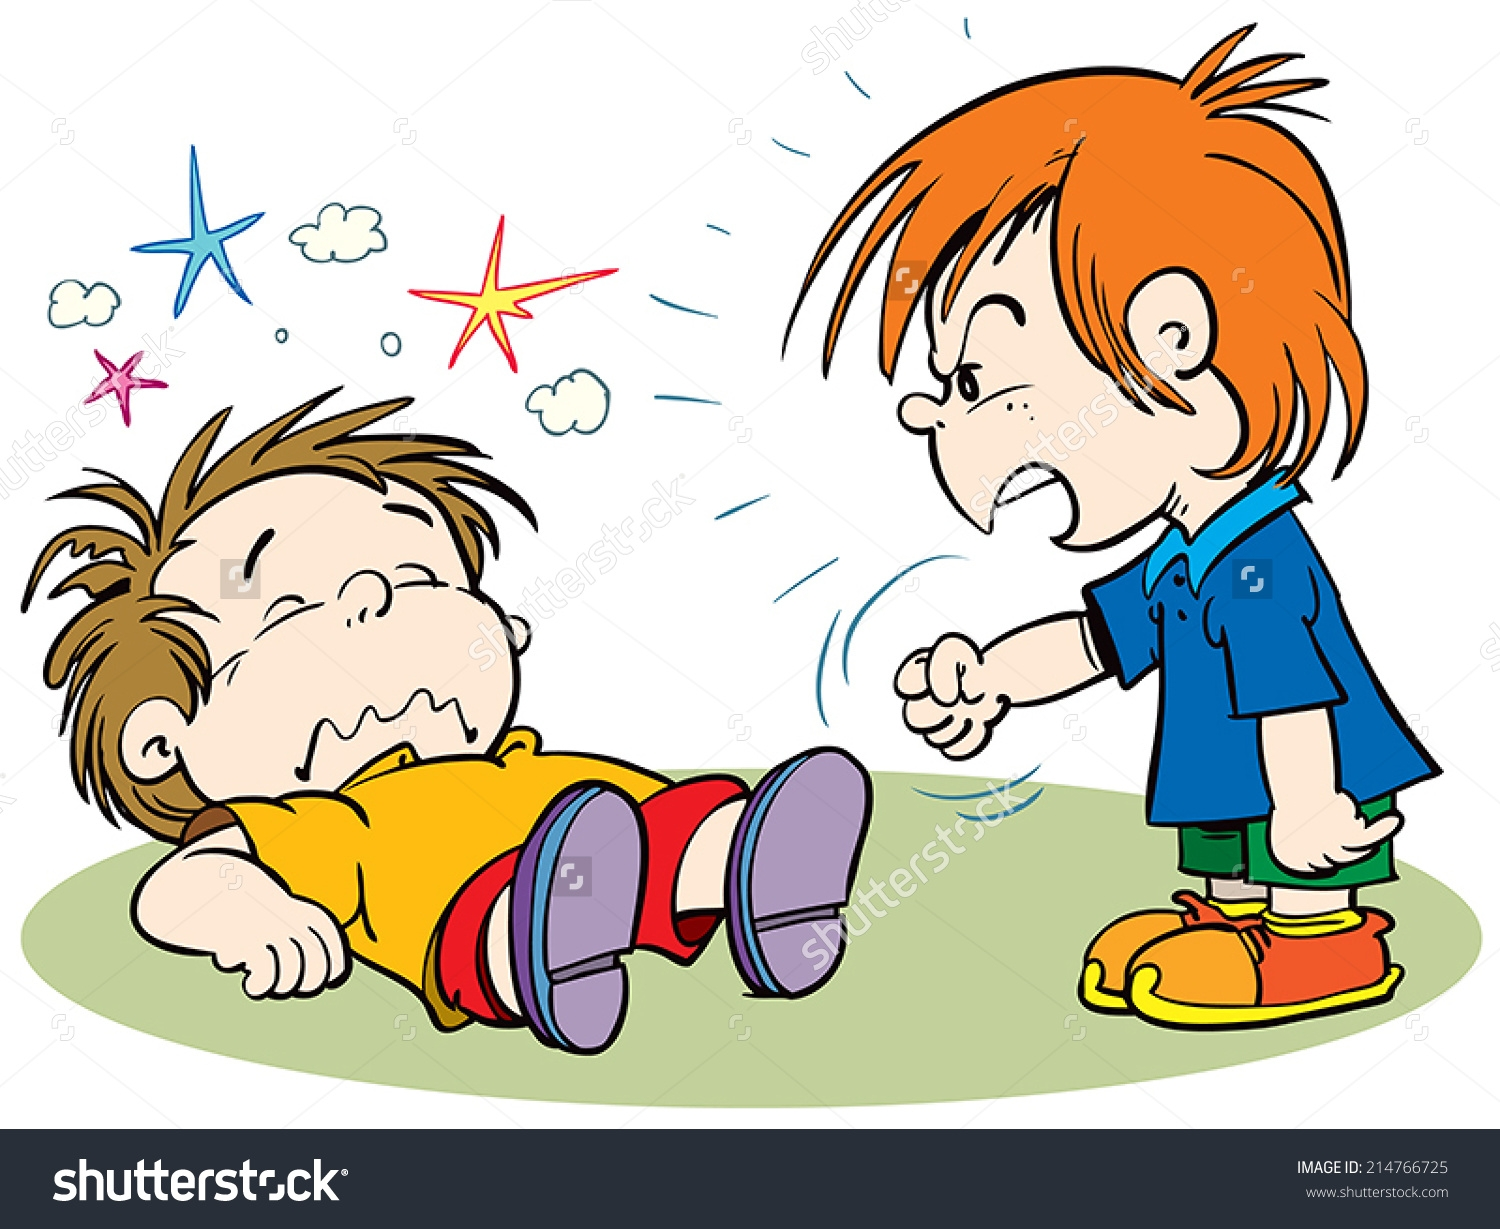 Fight clipart.  collection of high